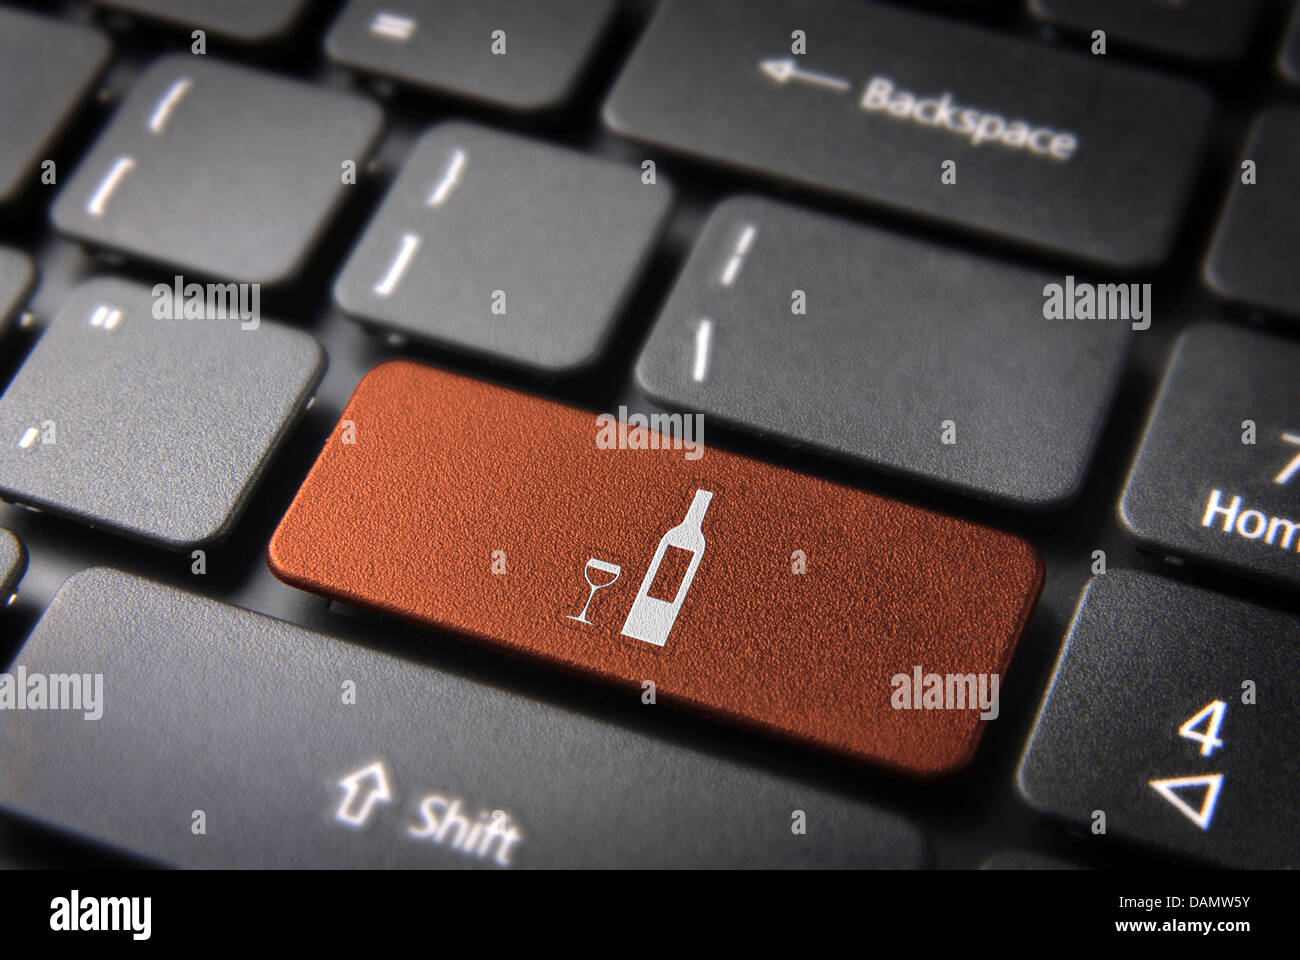 Food key with Wine bottle and cup icon on laptop keyboard. Included clipping path, so you can easily edit it. Stock Photo